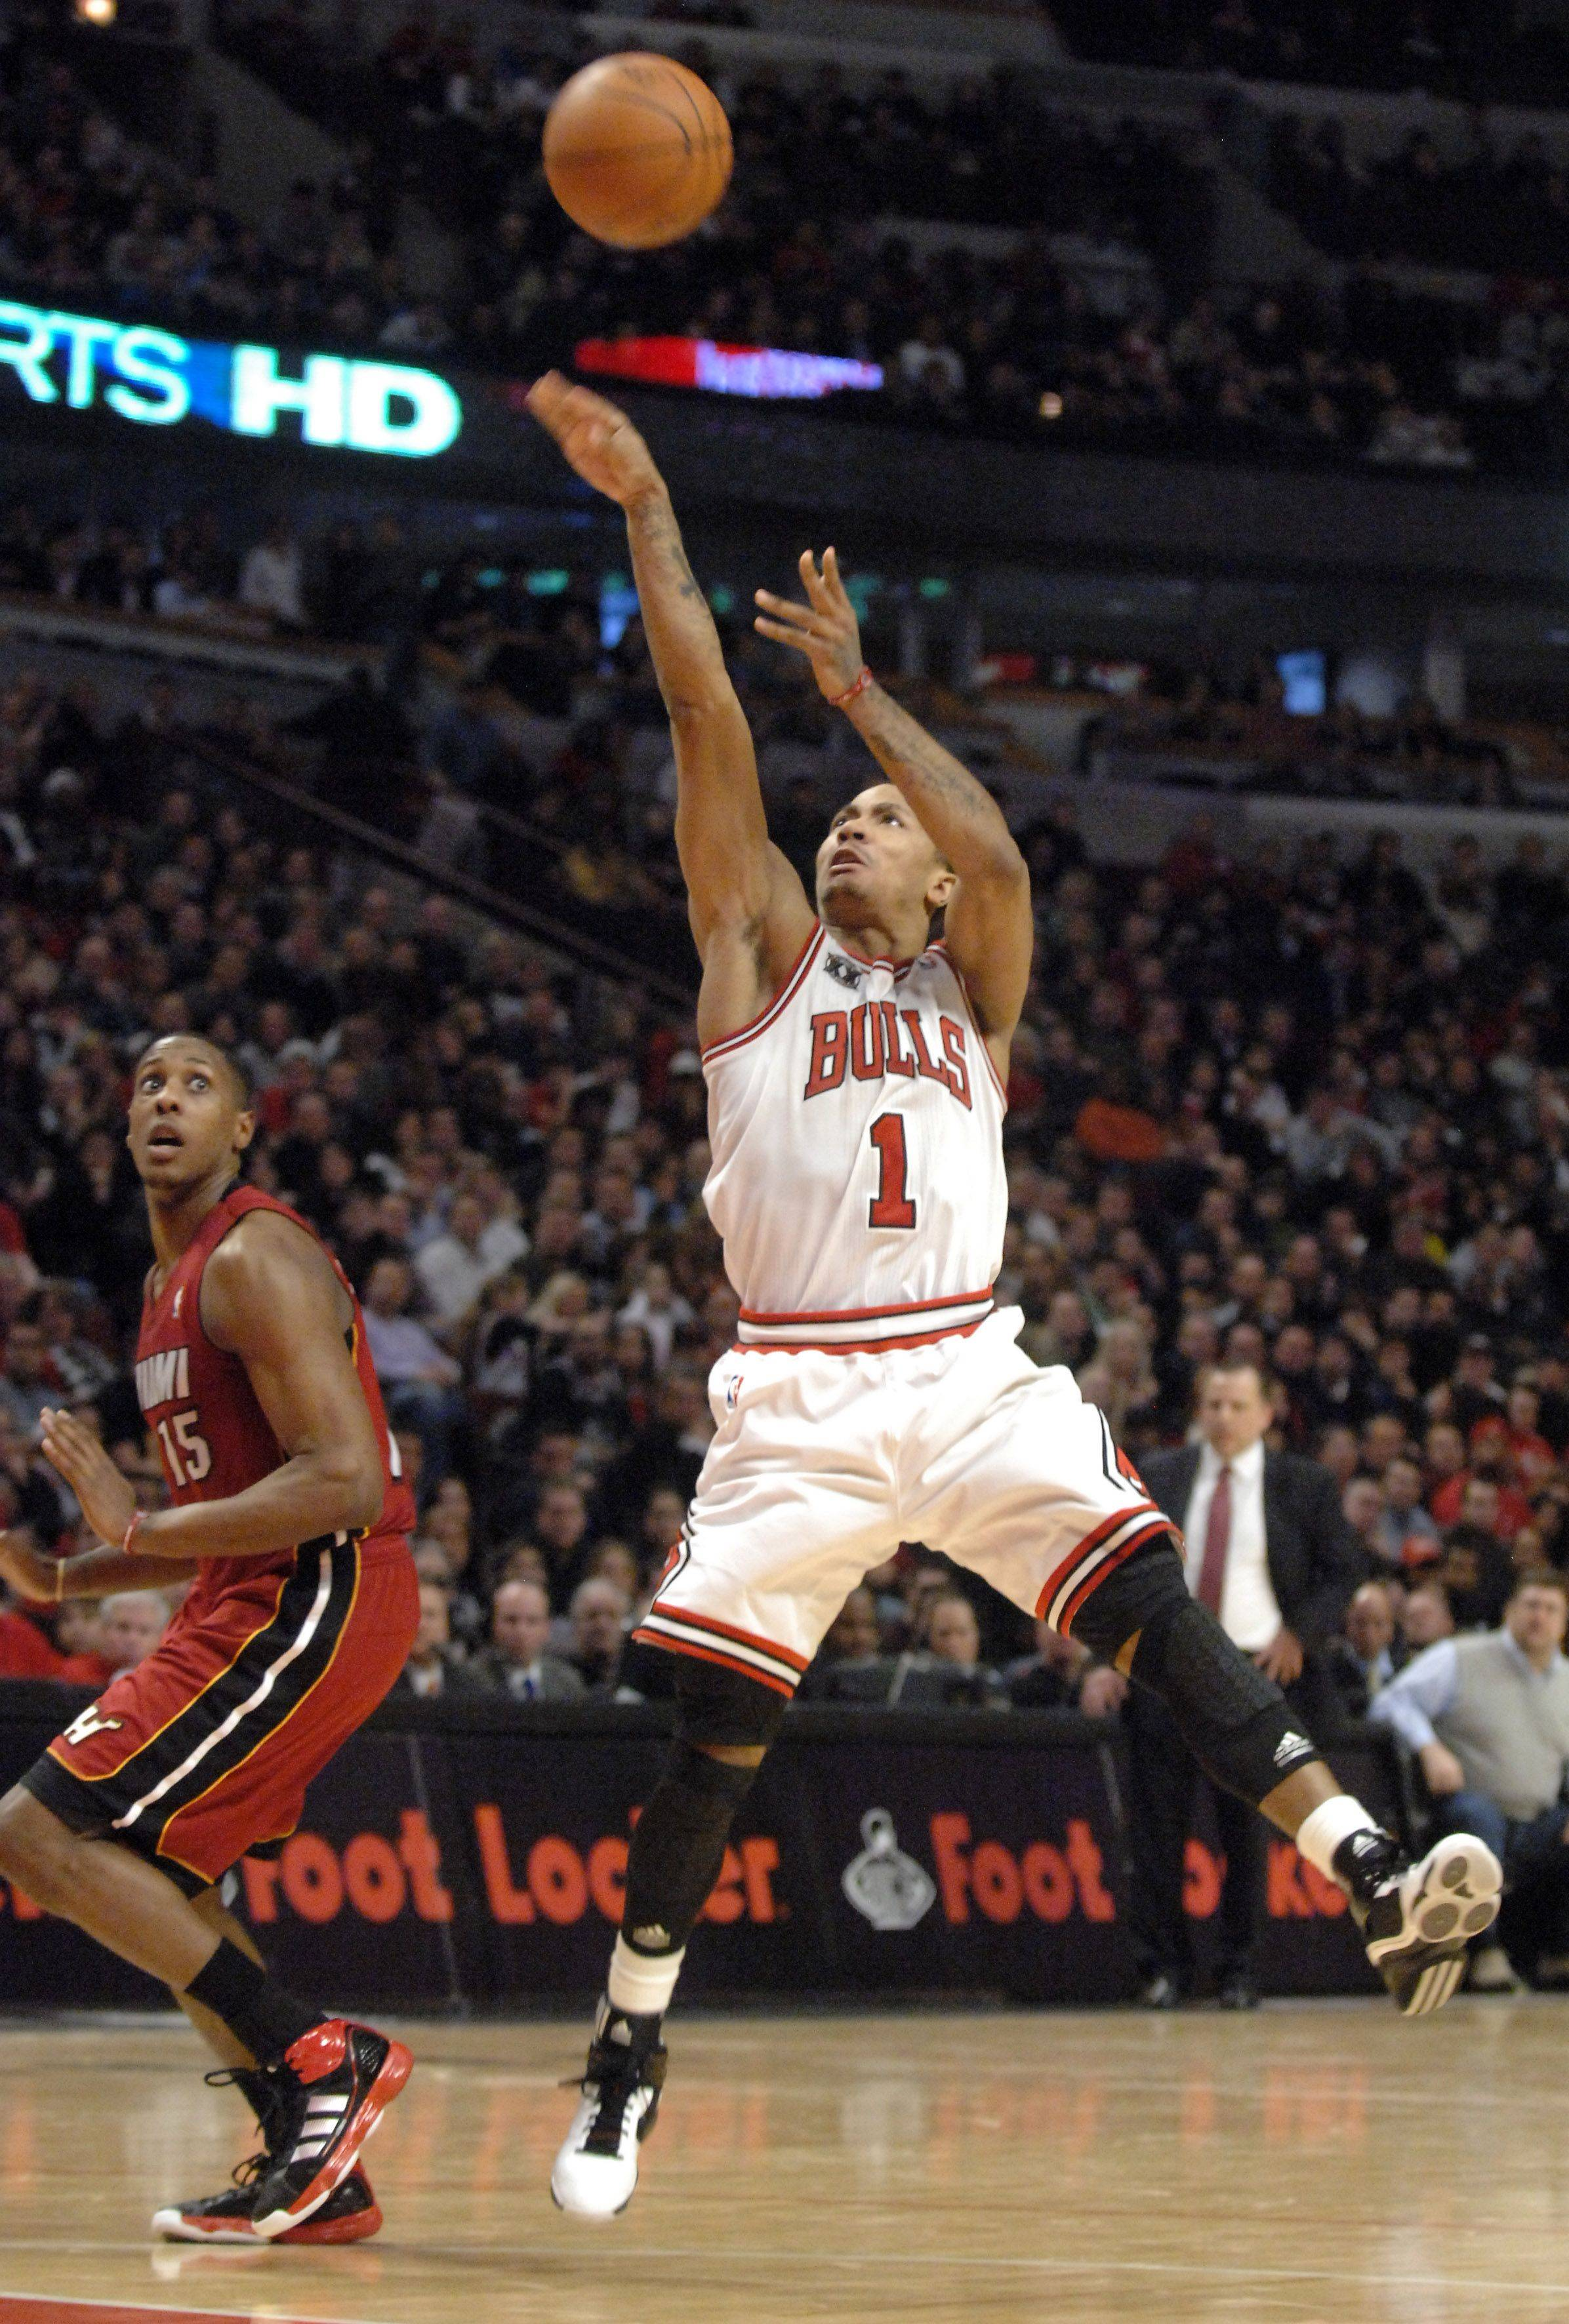 Chicago Bulls point guard Derrick Rose scores and is fouled in the 3rd quarter against Miami during Saturday's game at the United Center in Chicago.